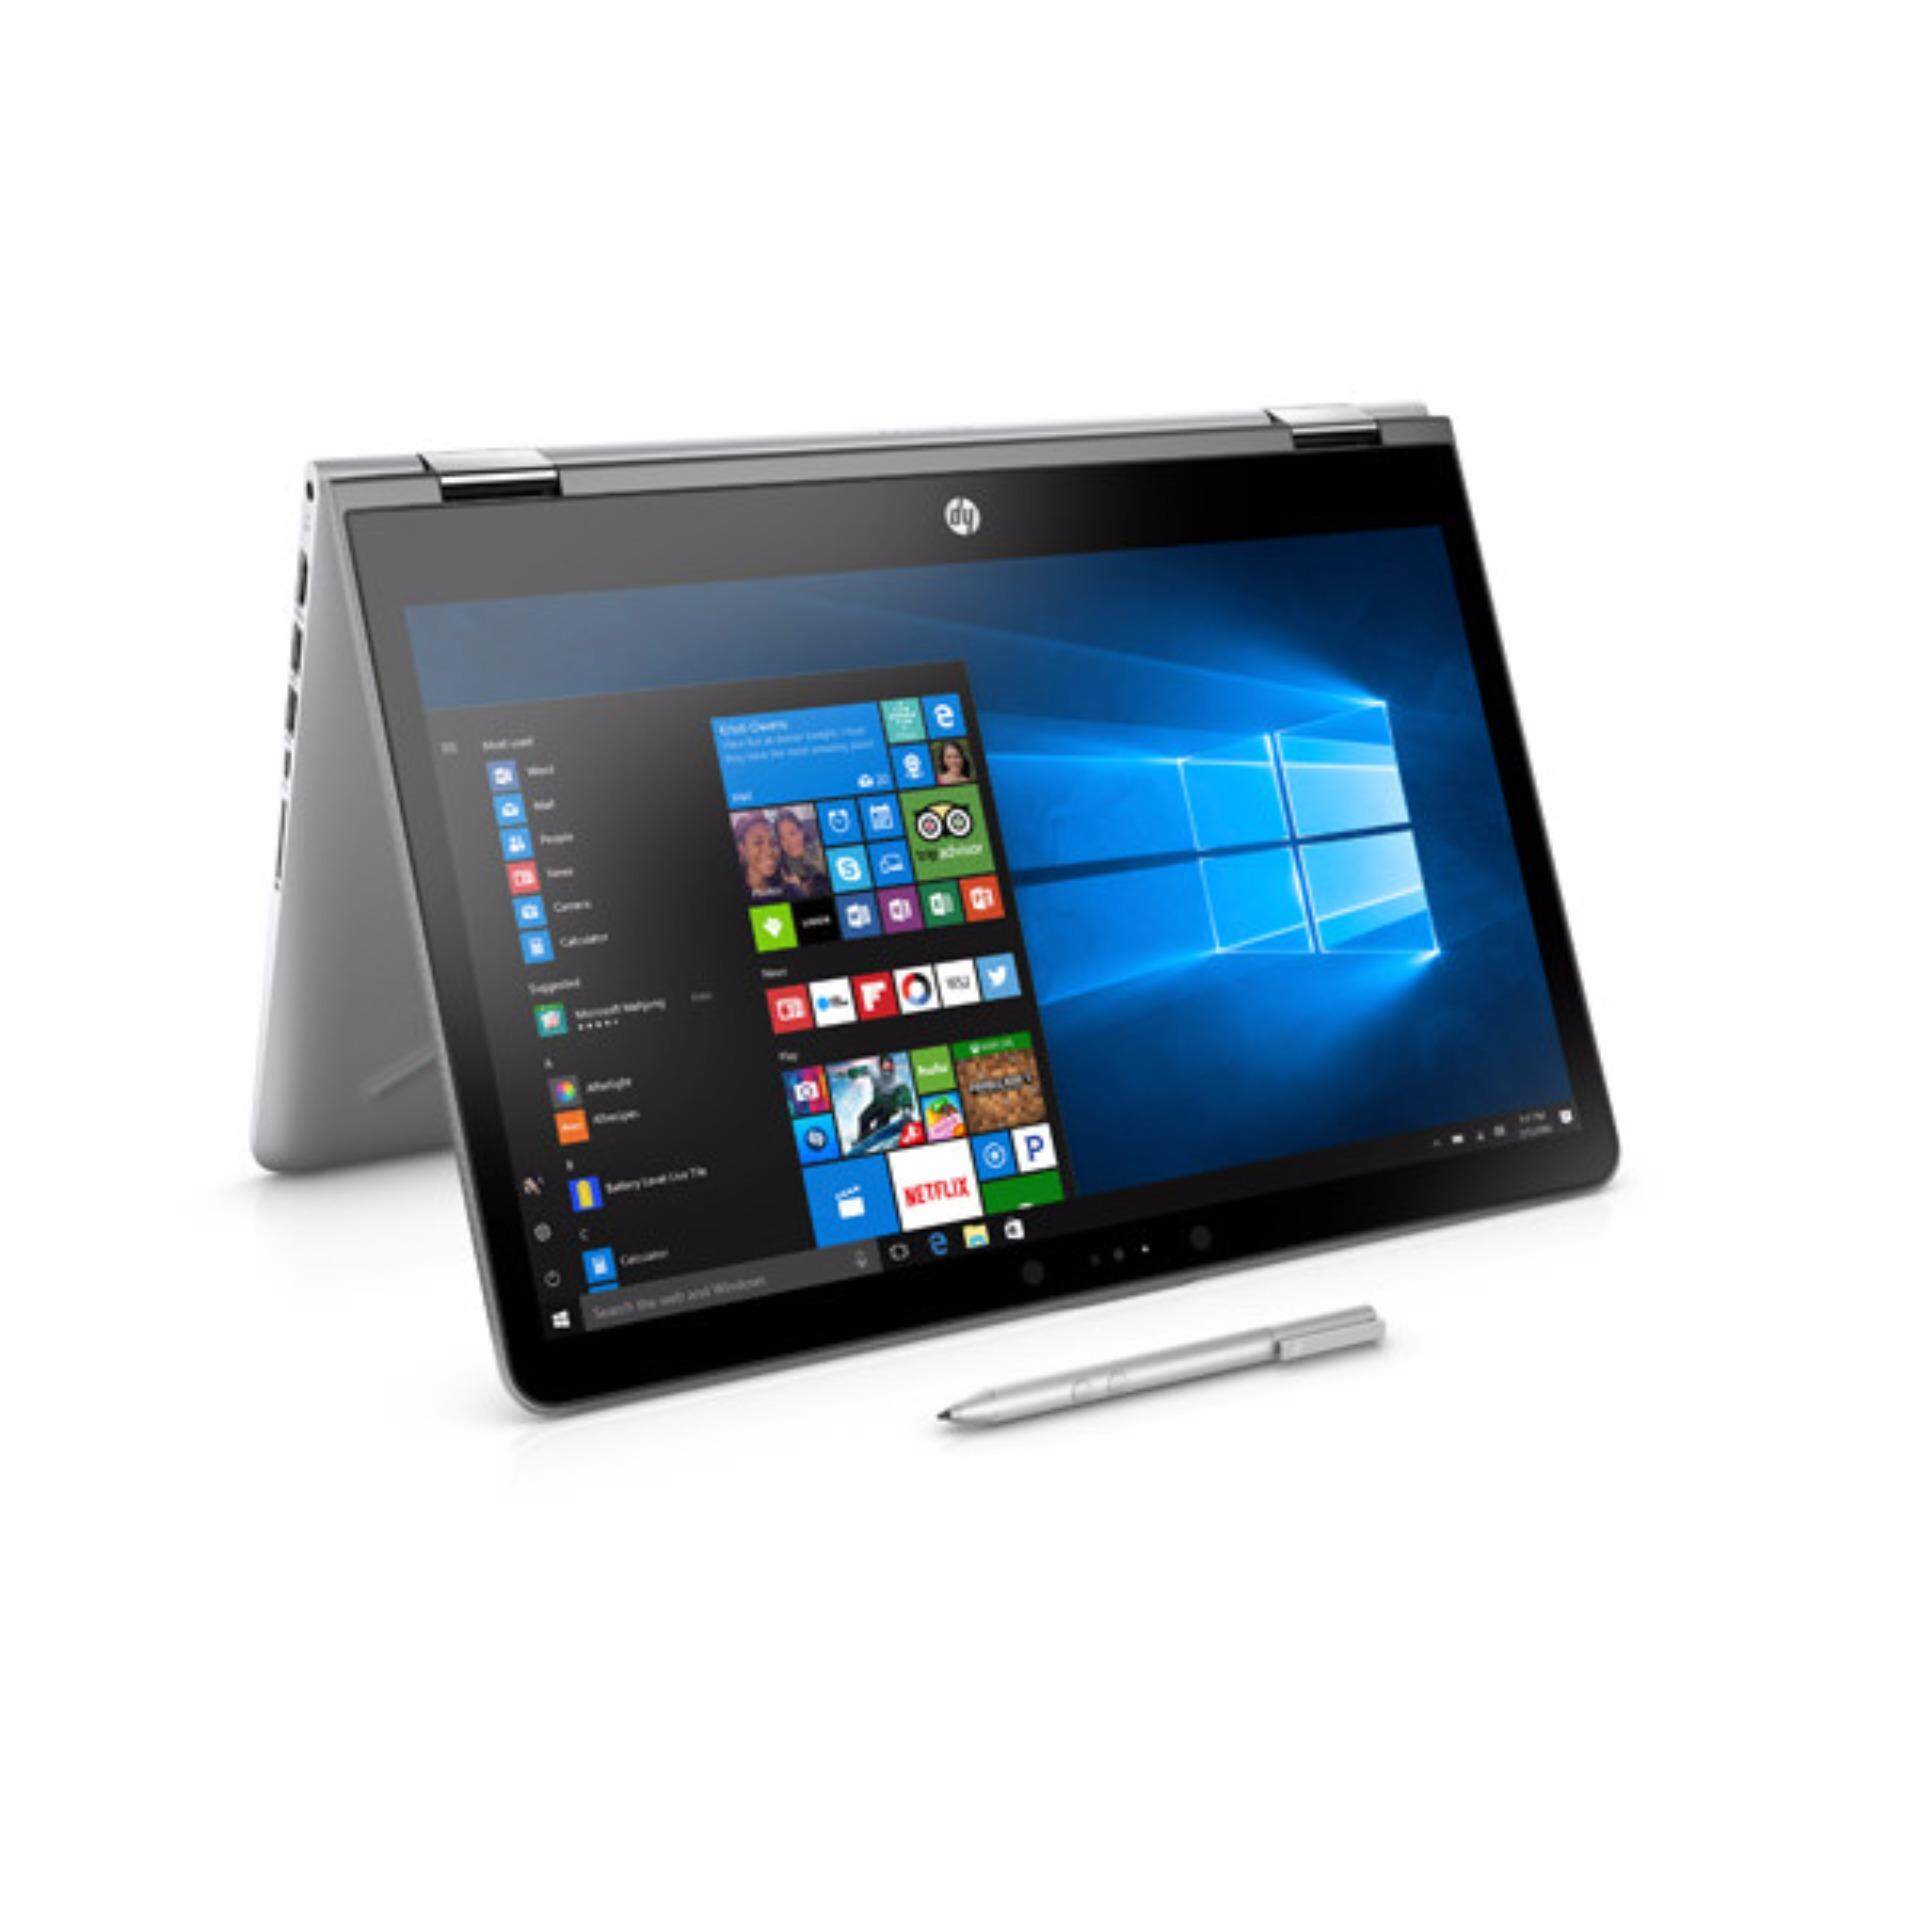 HP Pavilion x360 14-inch Notebook (Silver; Intel® Core™ i3) with Pen HP-14BA063TX Malaysia